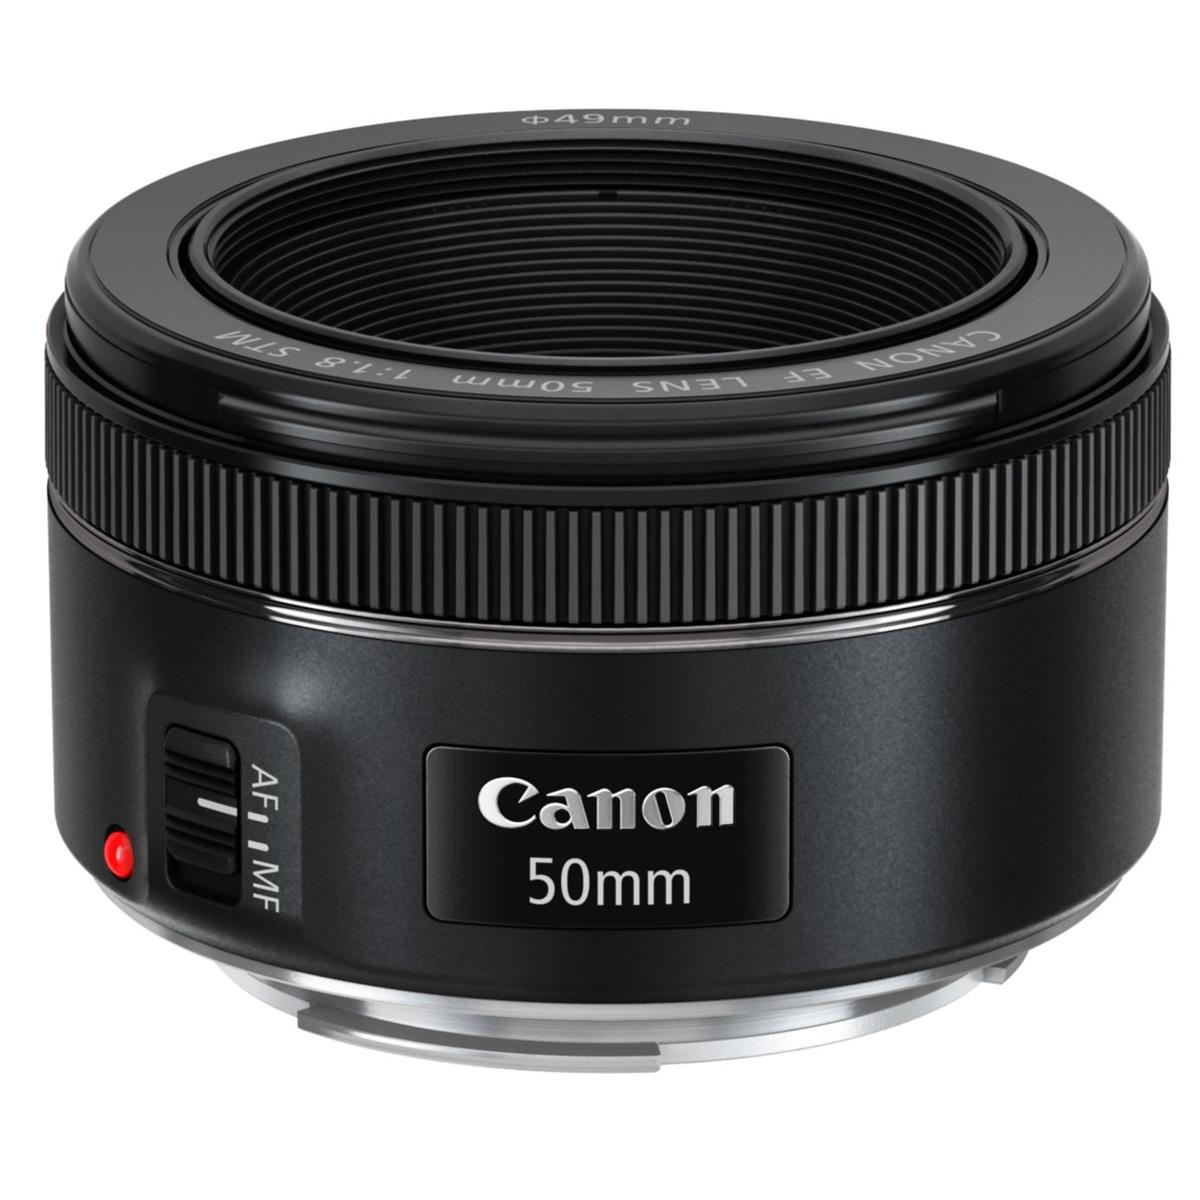 an upgraded lens